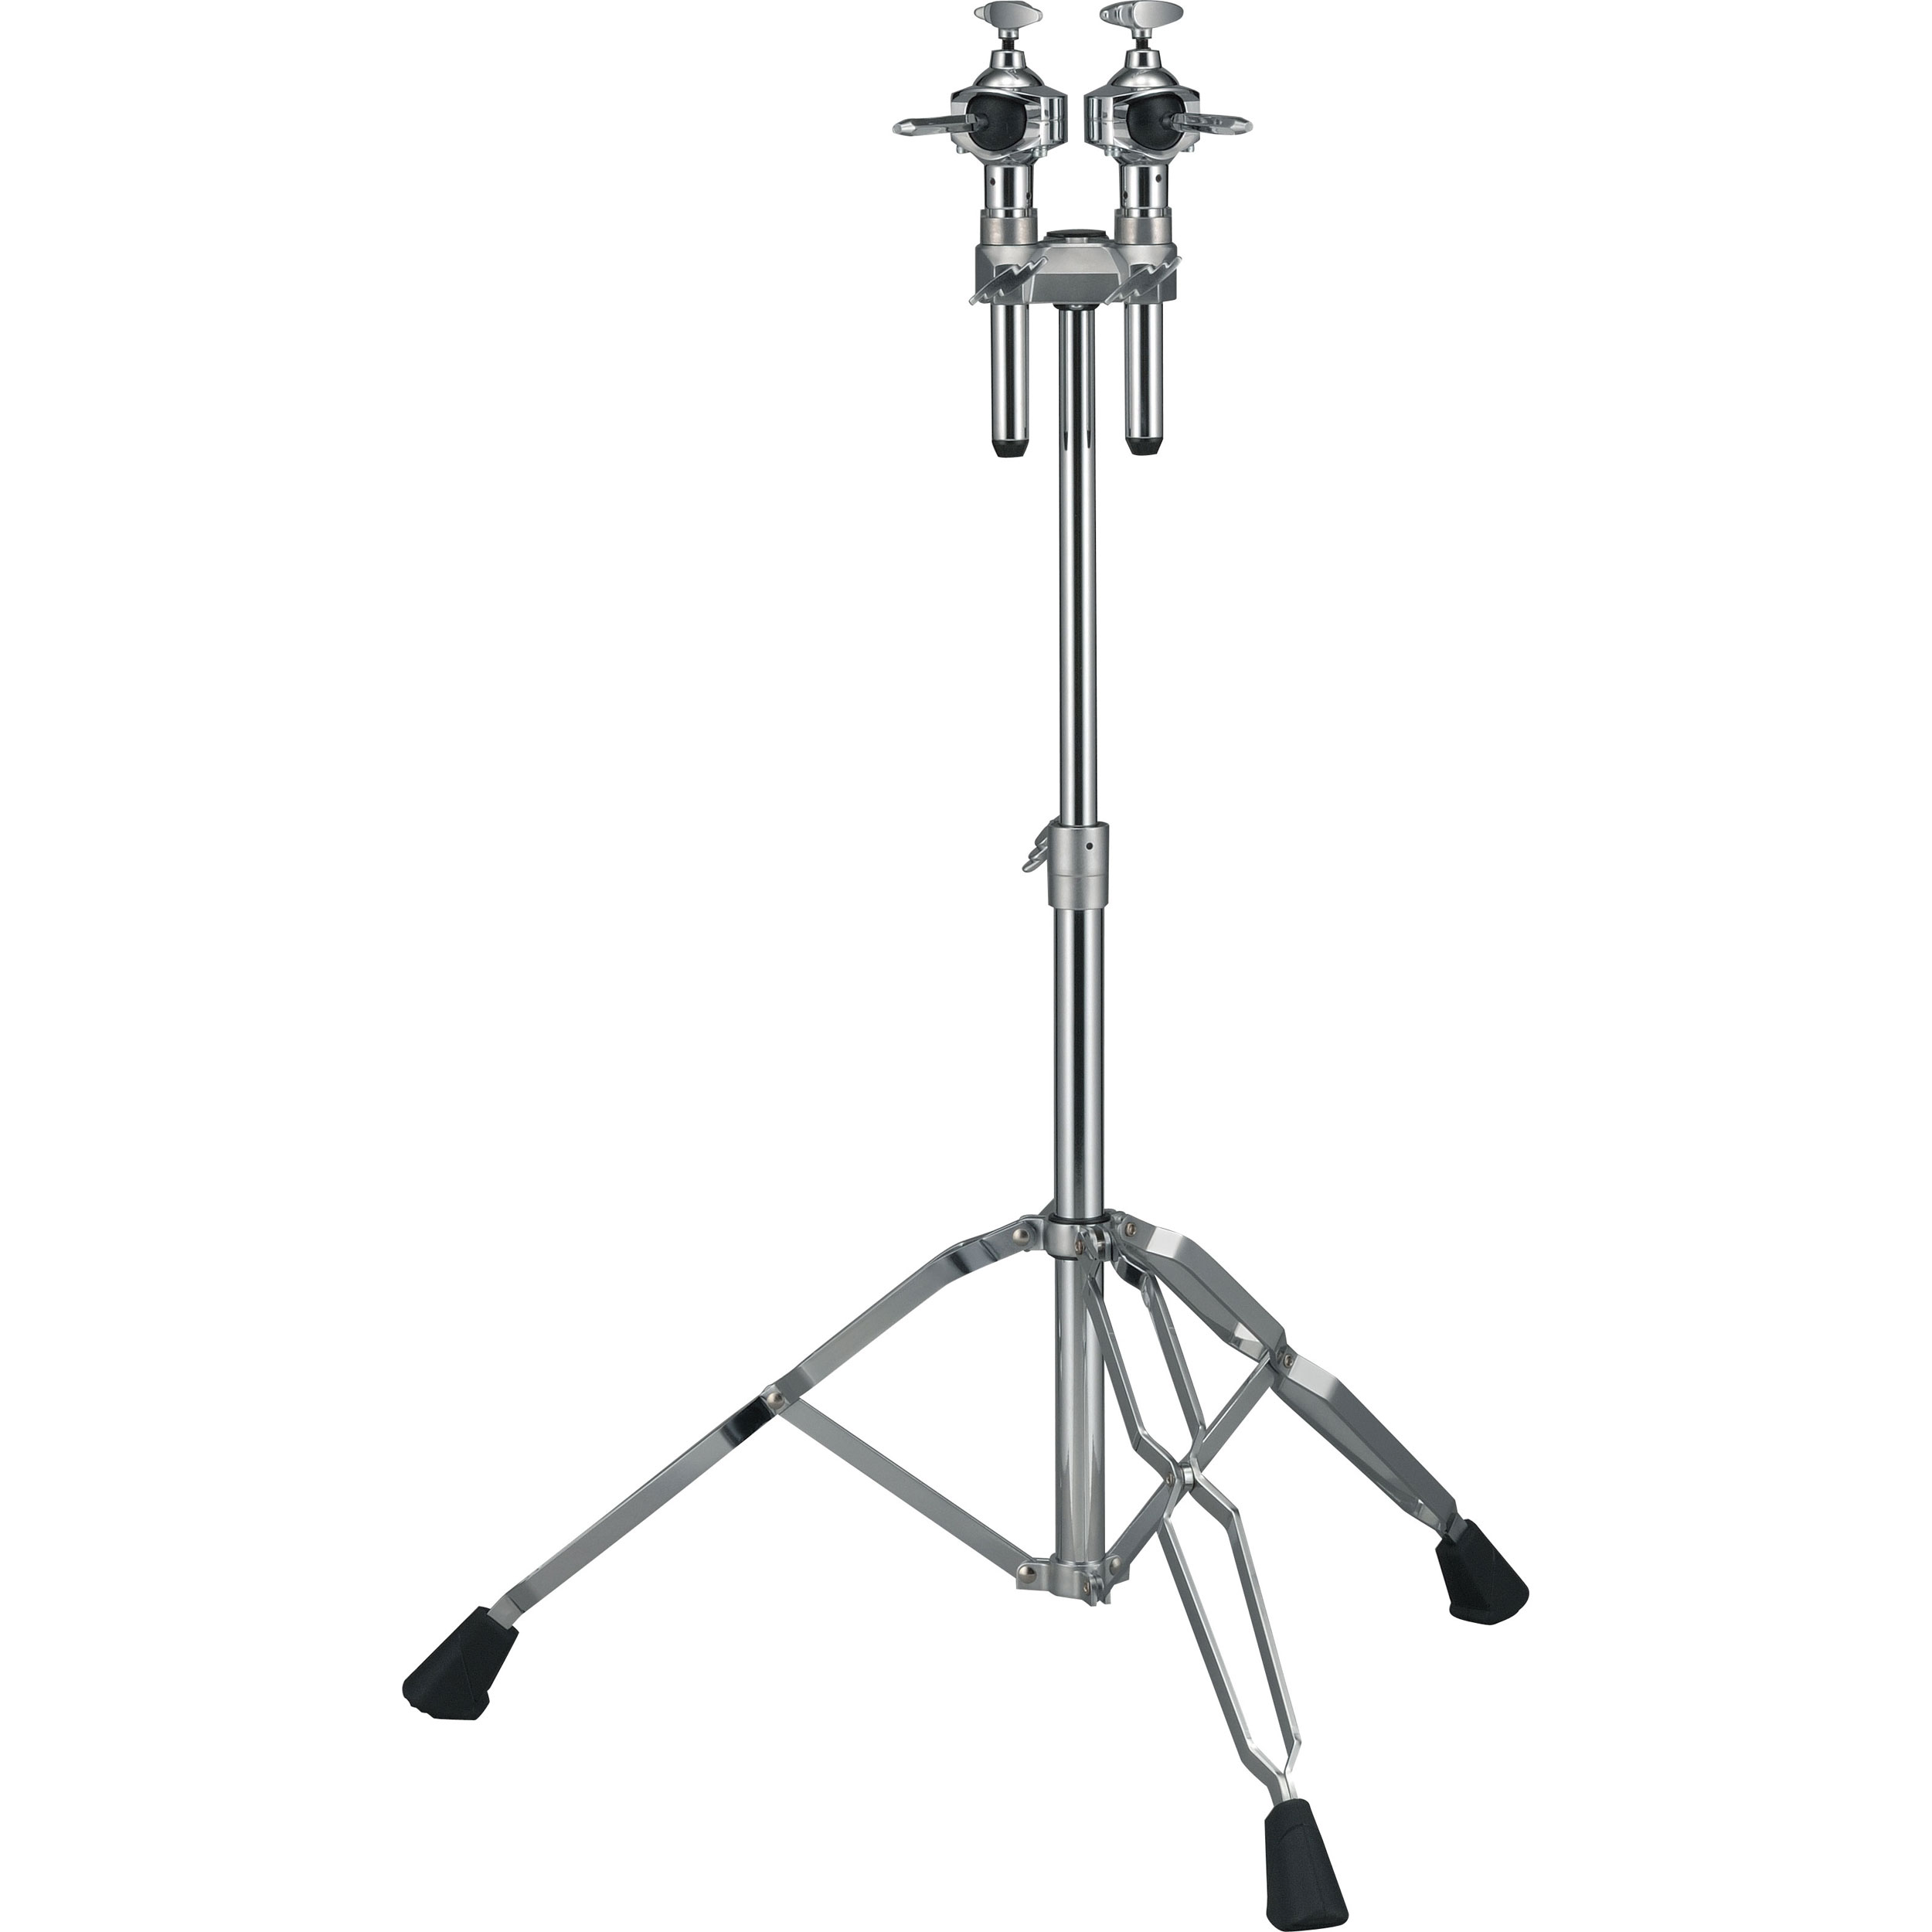 Yamaha Medium Weight Double Tom Stand with YESS Mounts